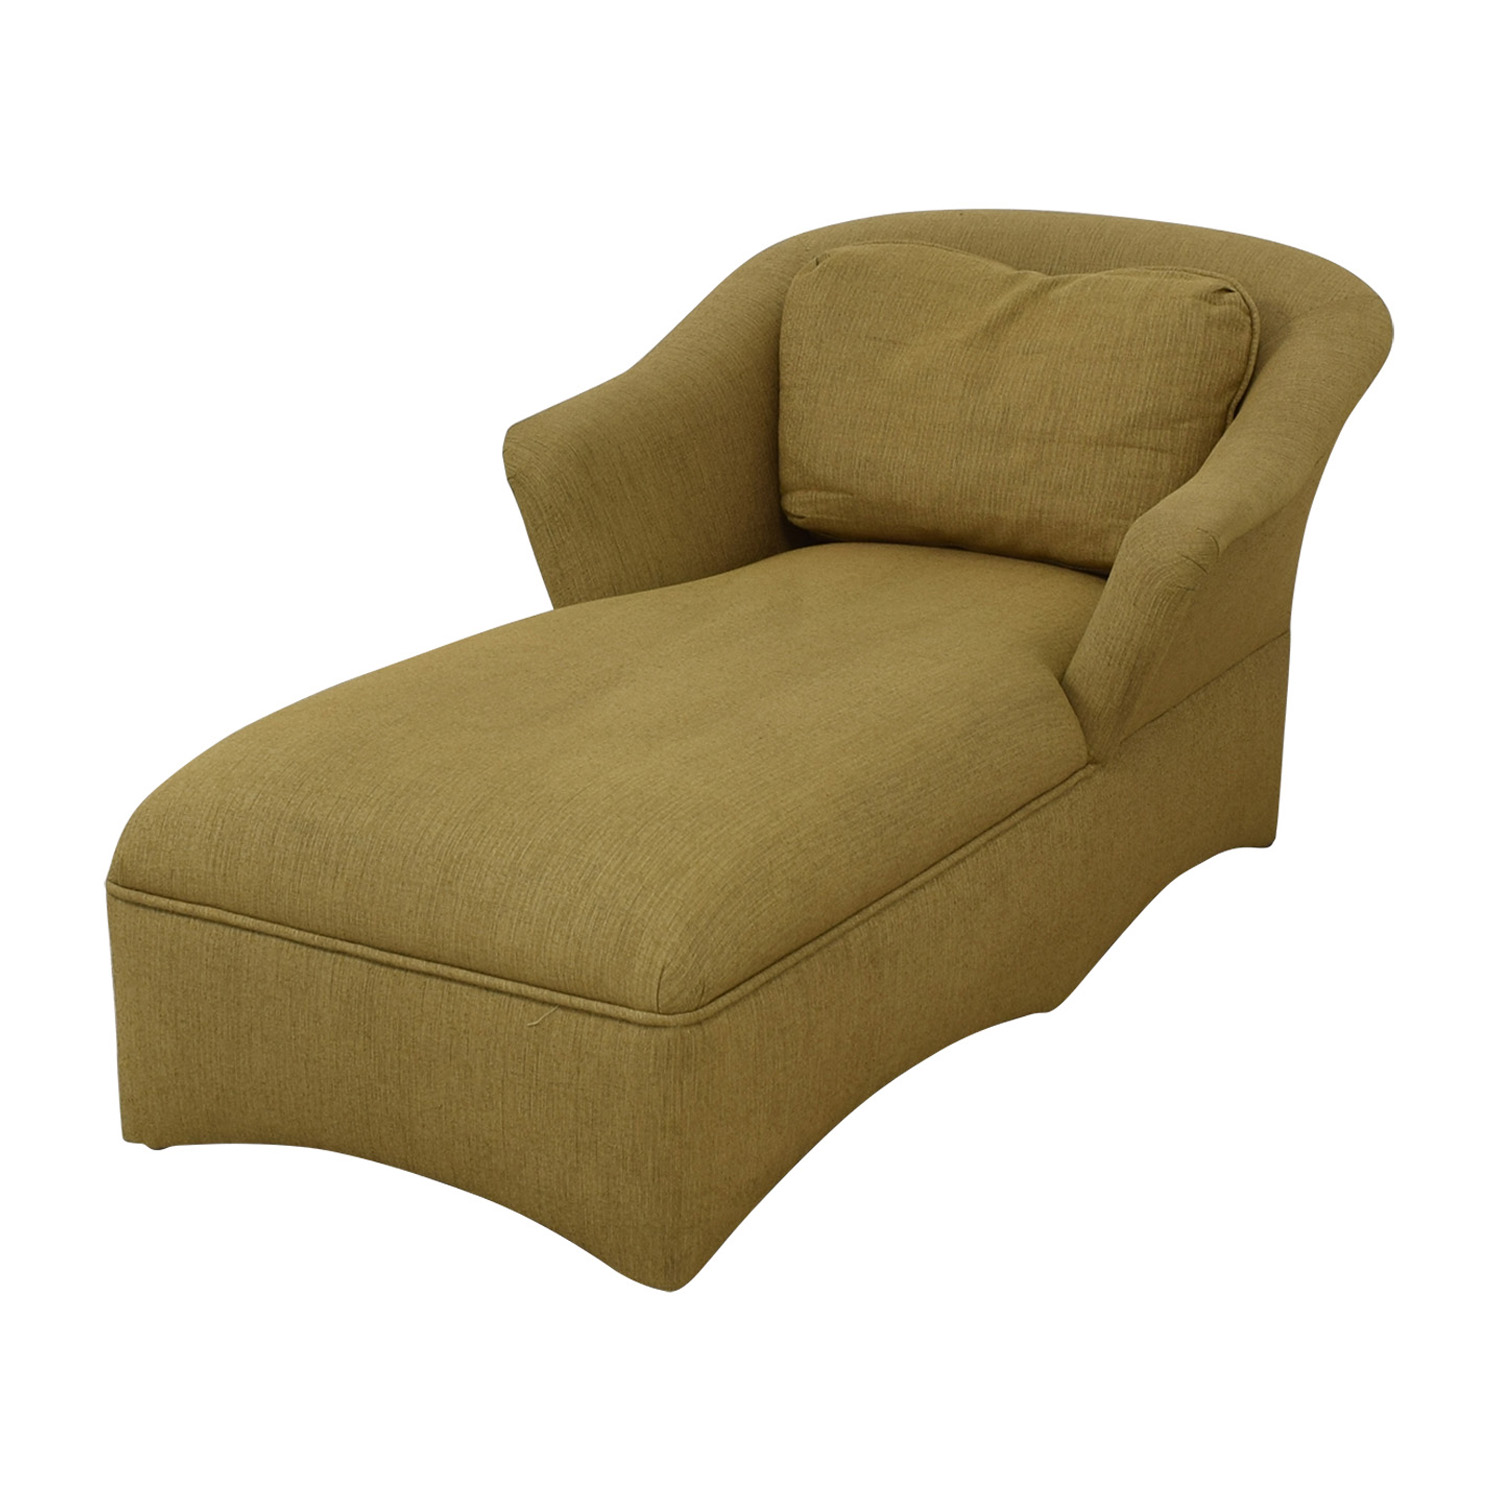 Beige Long Chaise Lounge nyc